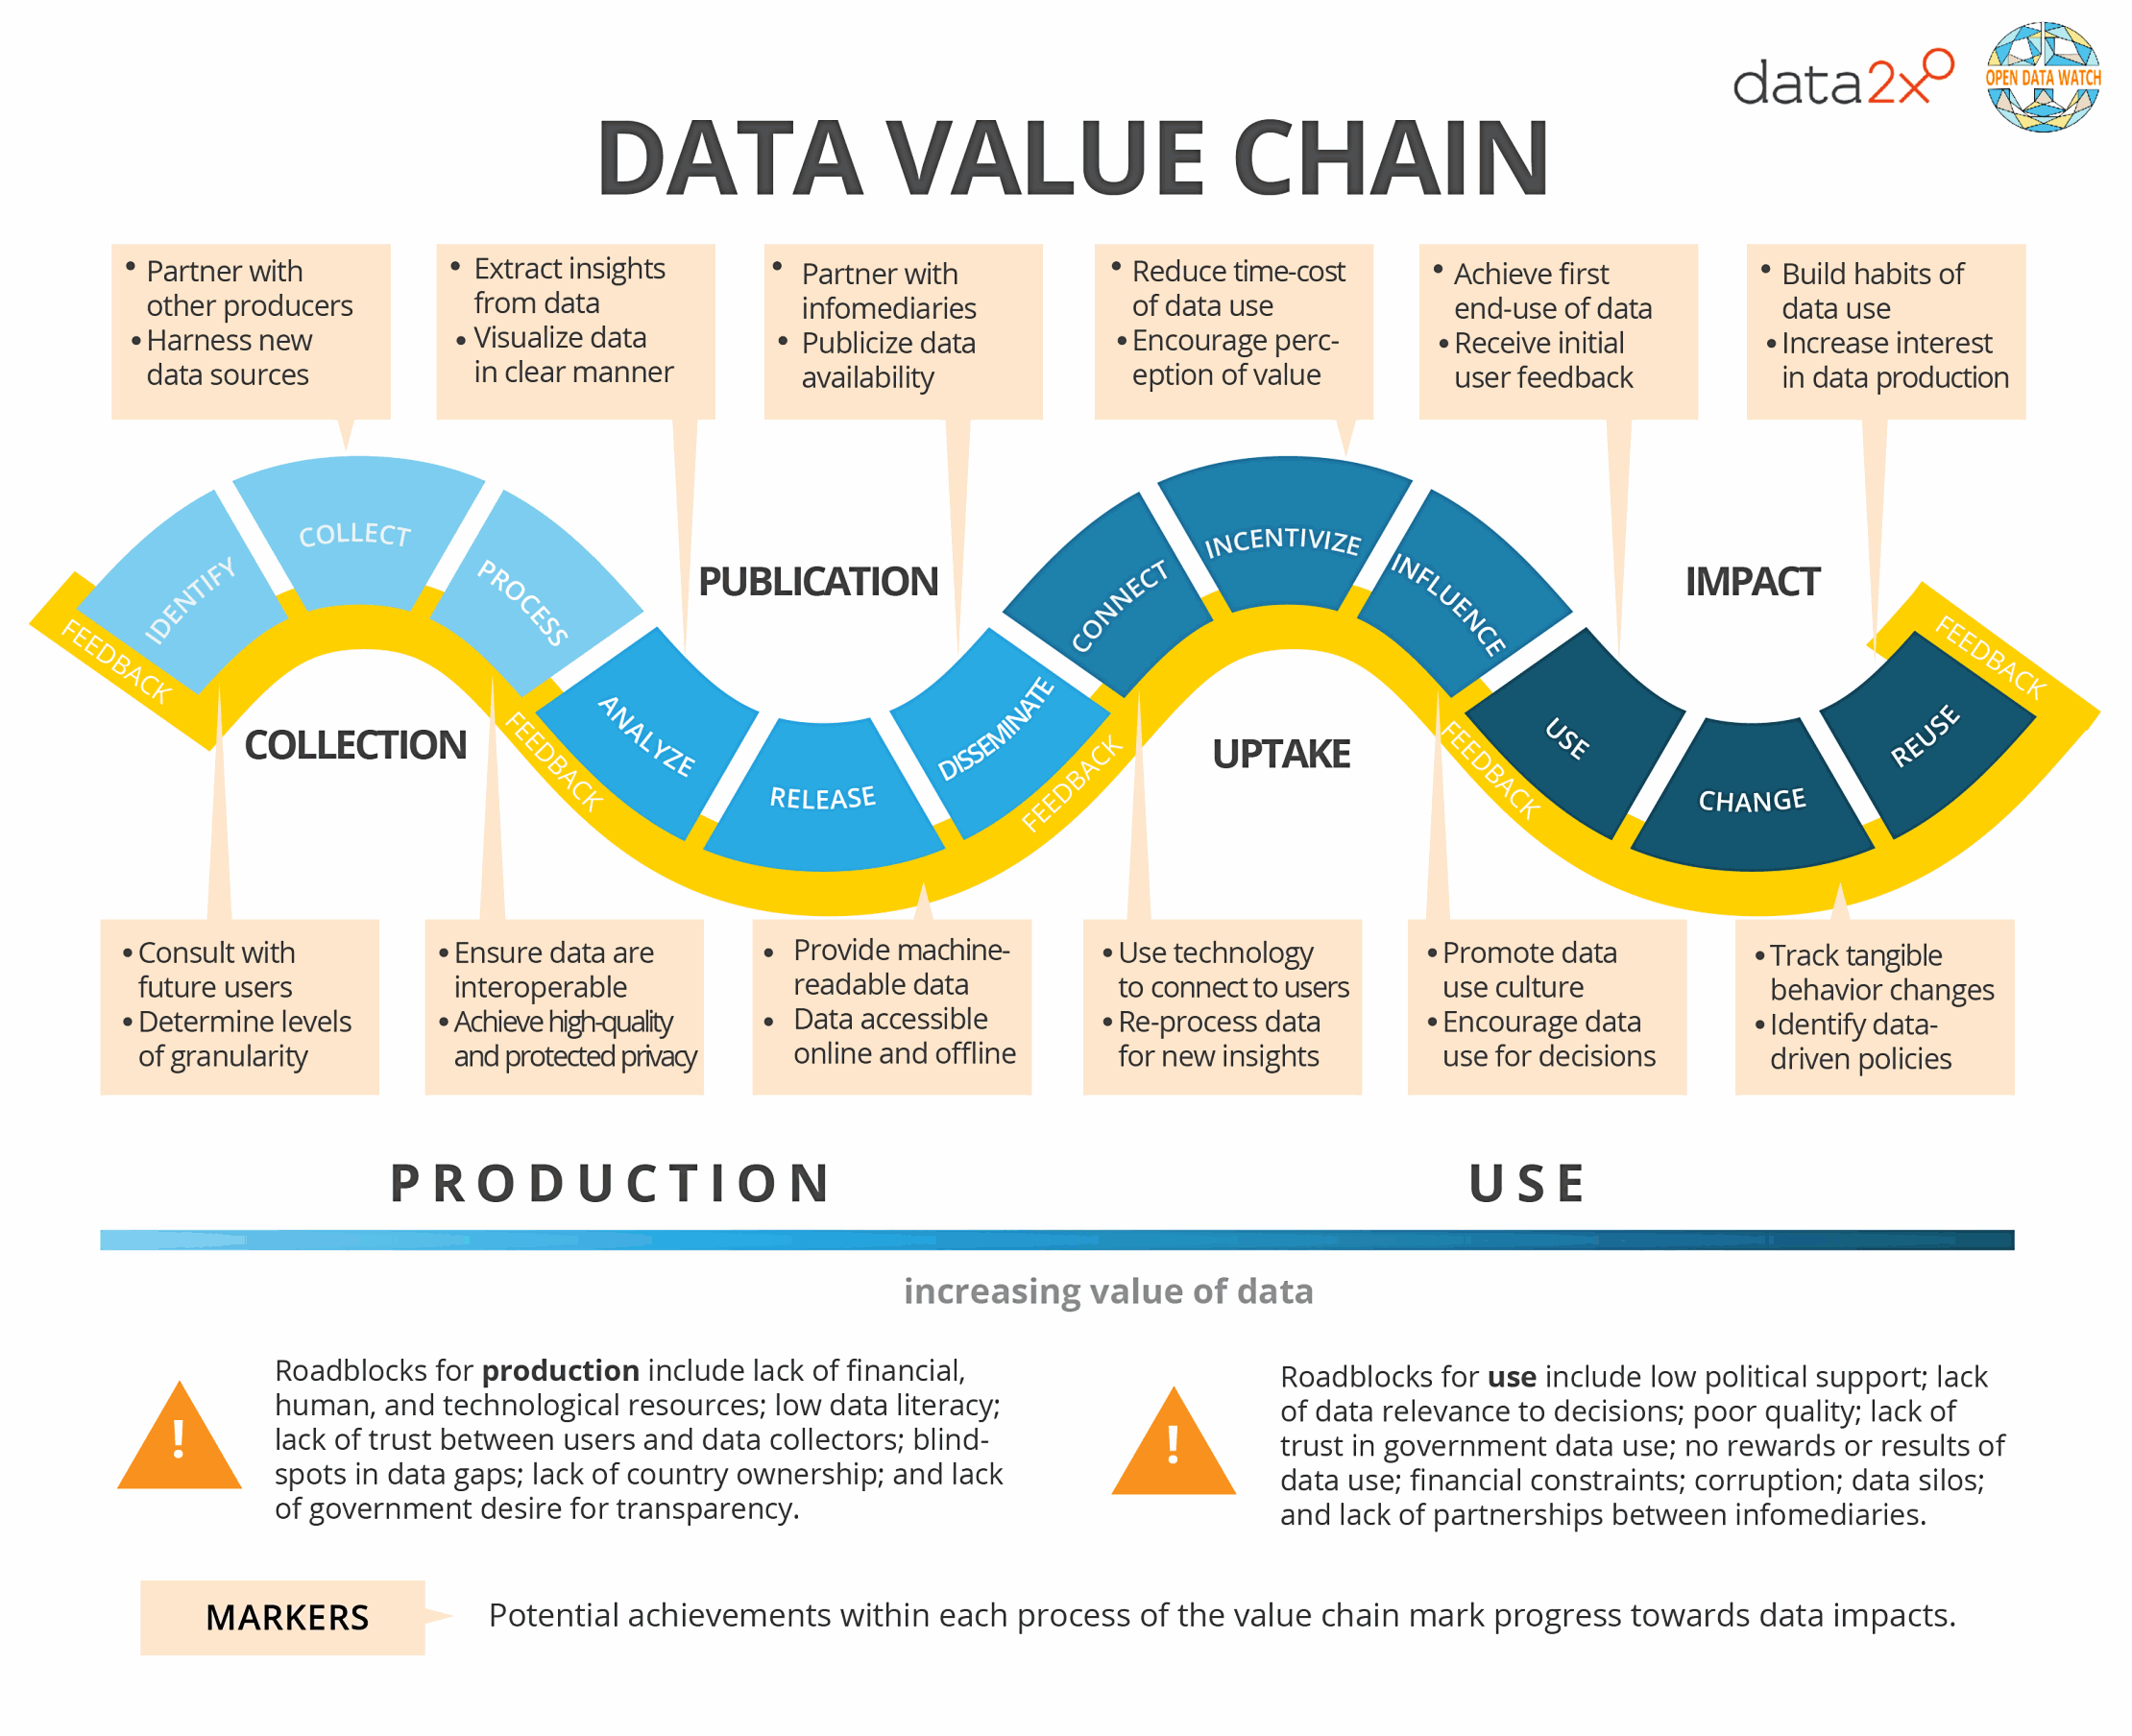 Data-Value-Chain-Data2x